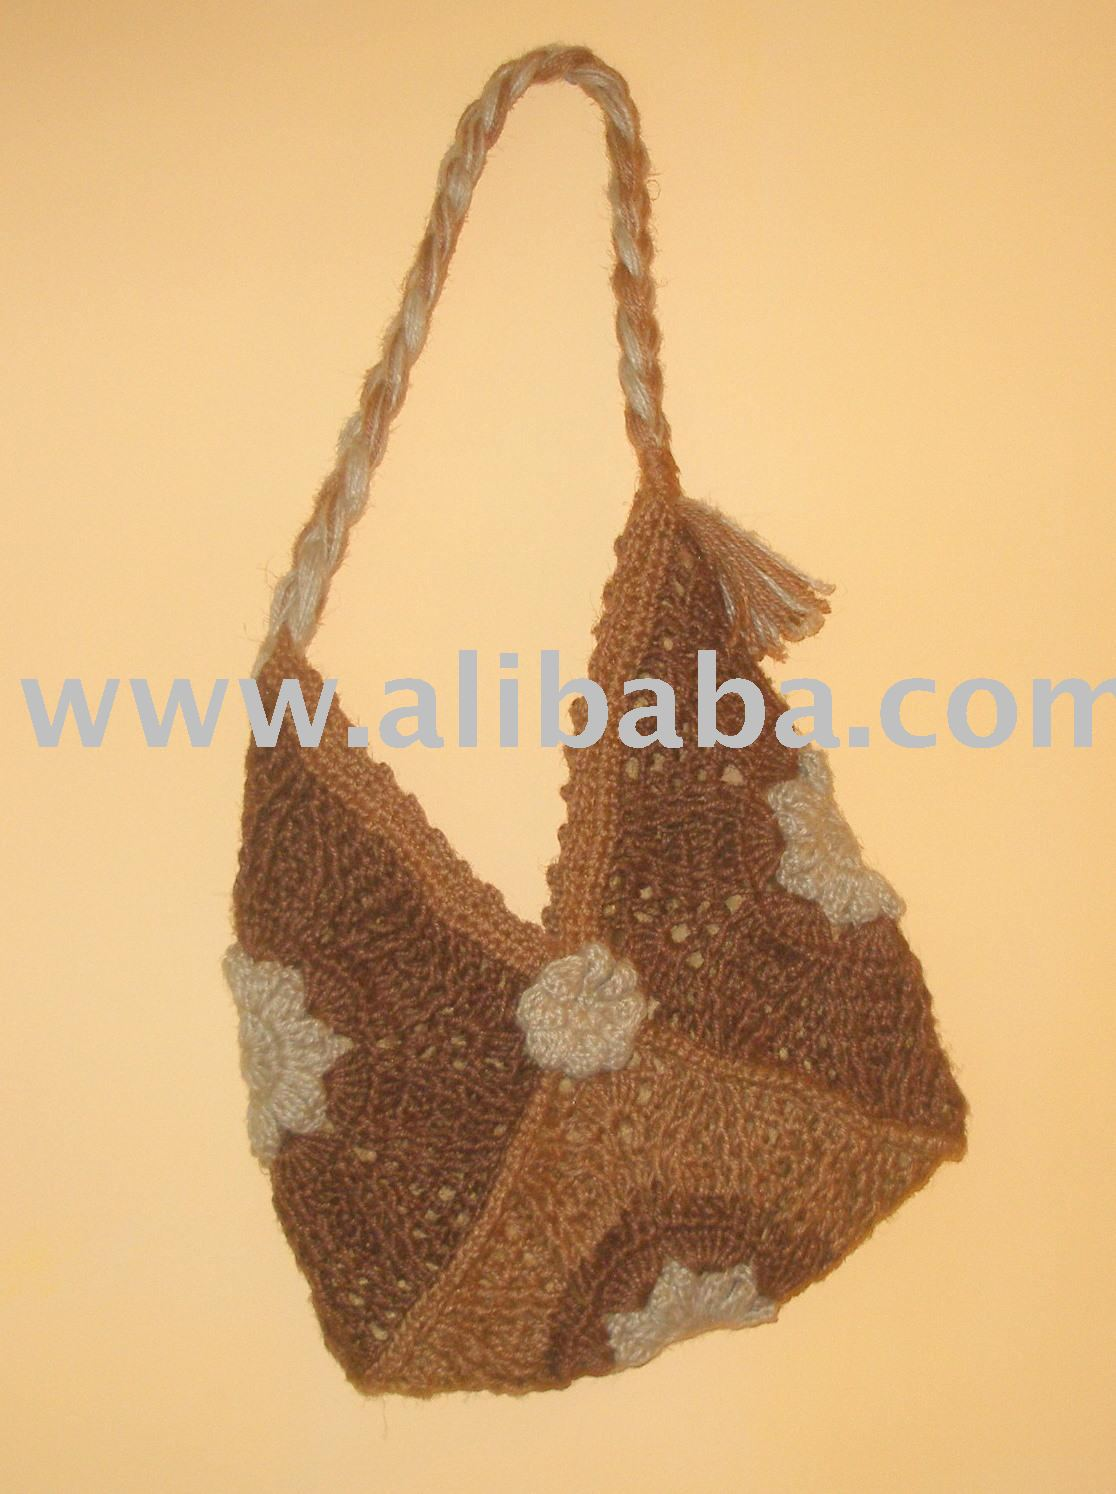 Handmade Handbags made with Ecologic Fiber